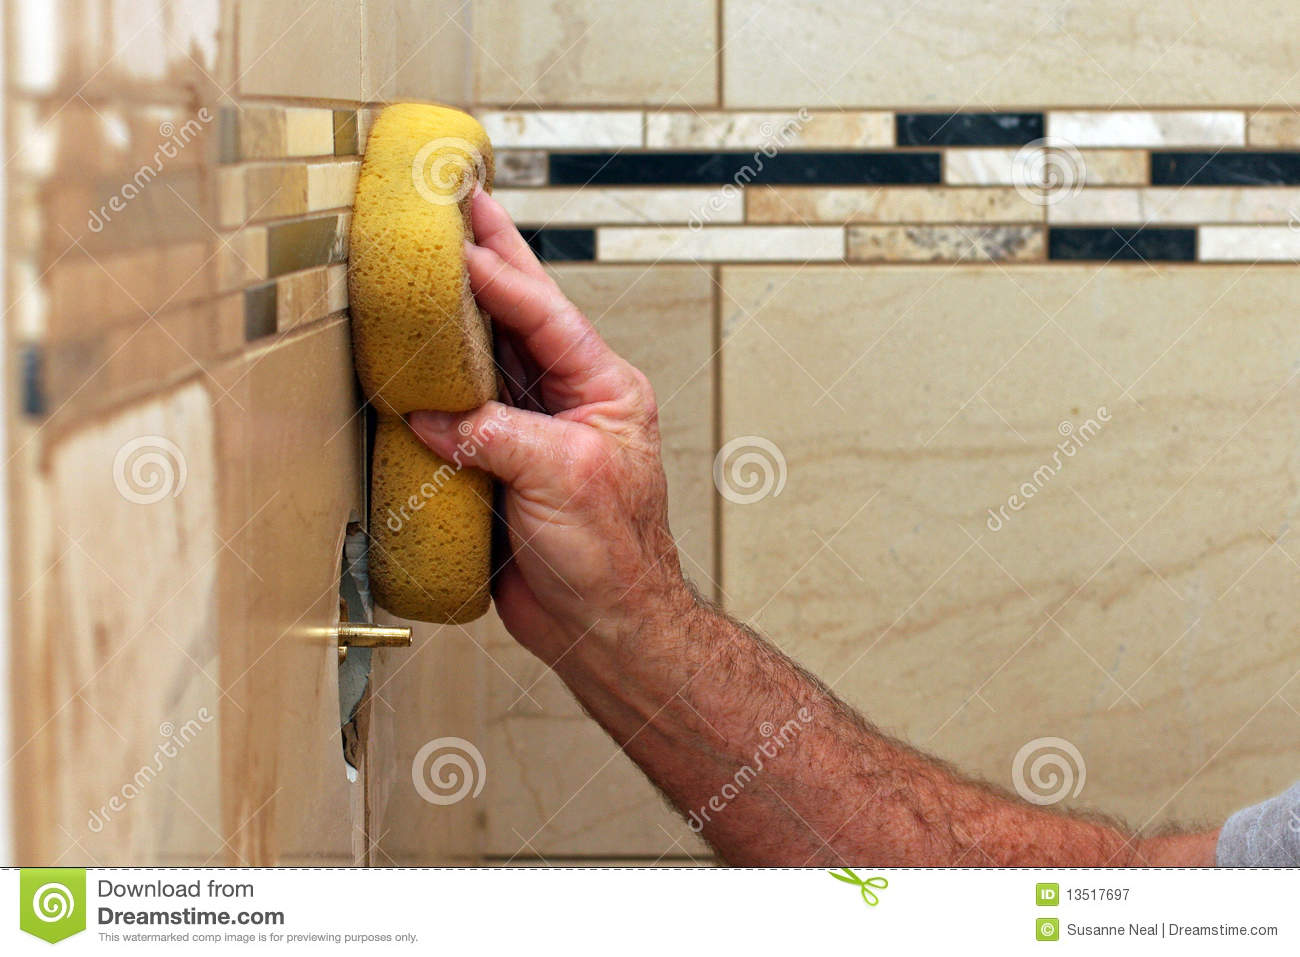 Hand Applying Grout To Wall Tiles Stock Image - Image of work ...